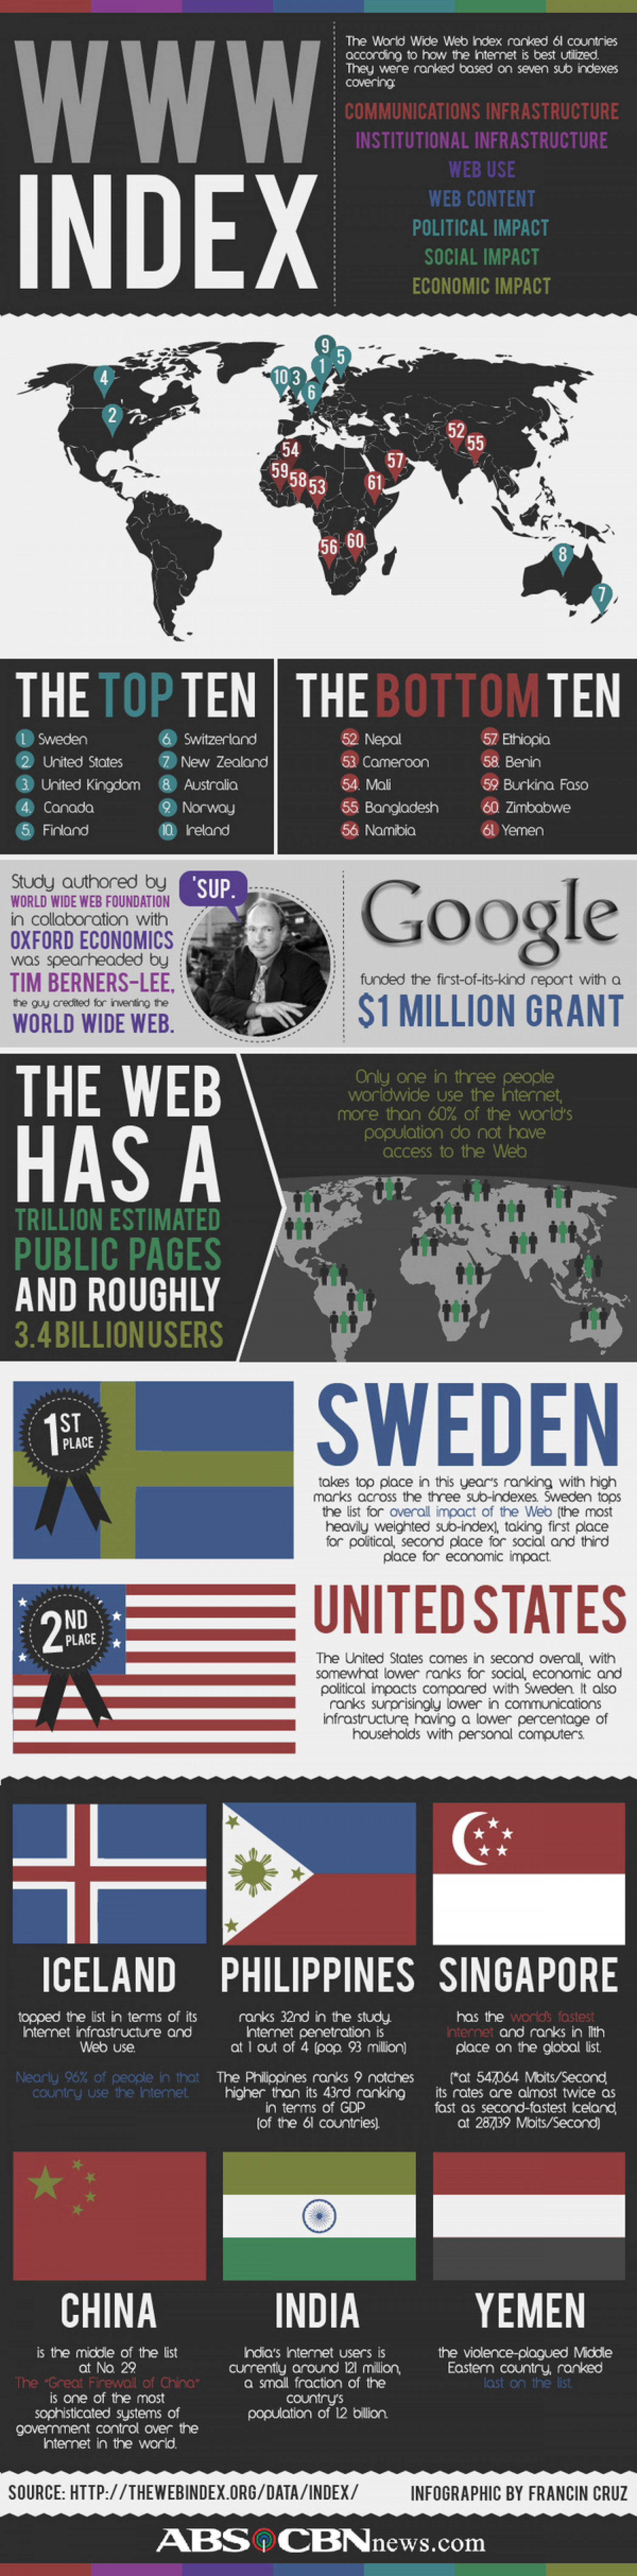 World Wide Web Index Infographic